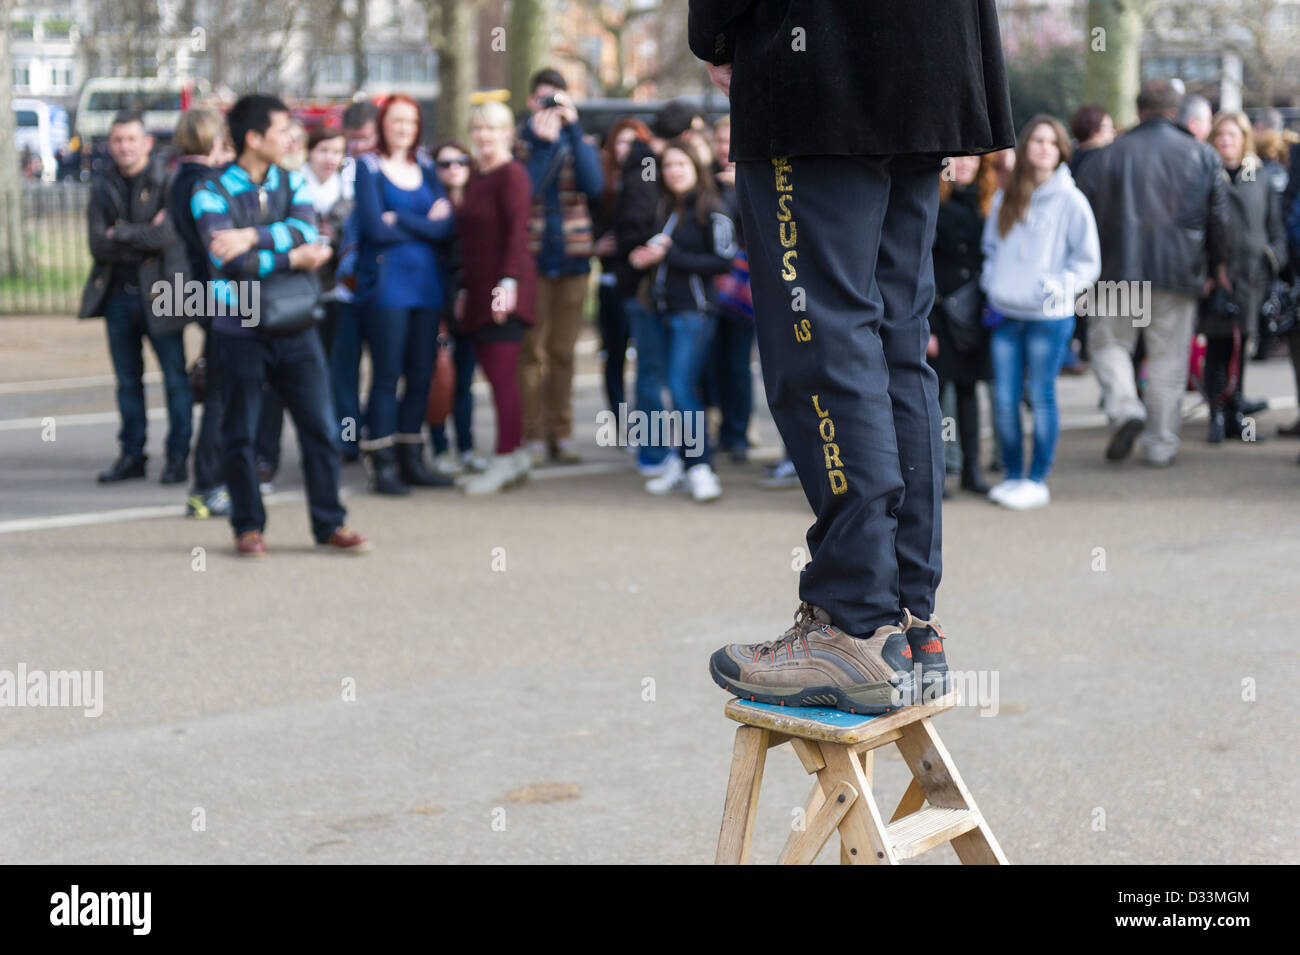 Speakers Corner in Hyde Park in London - Stock Image